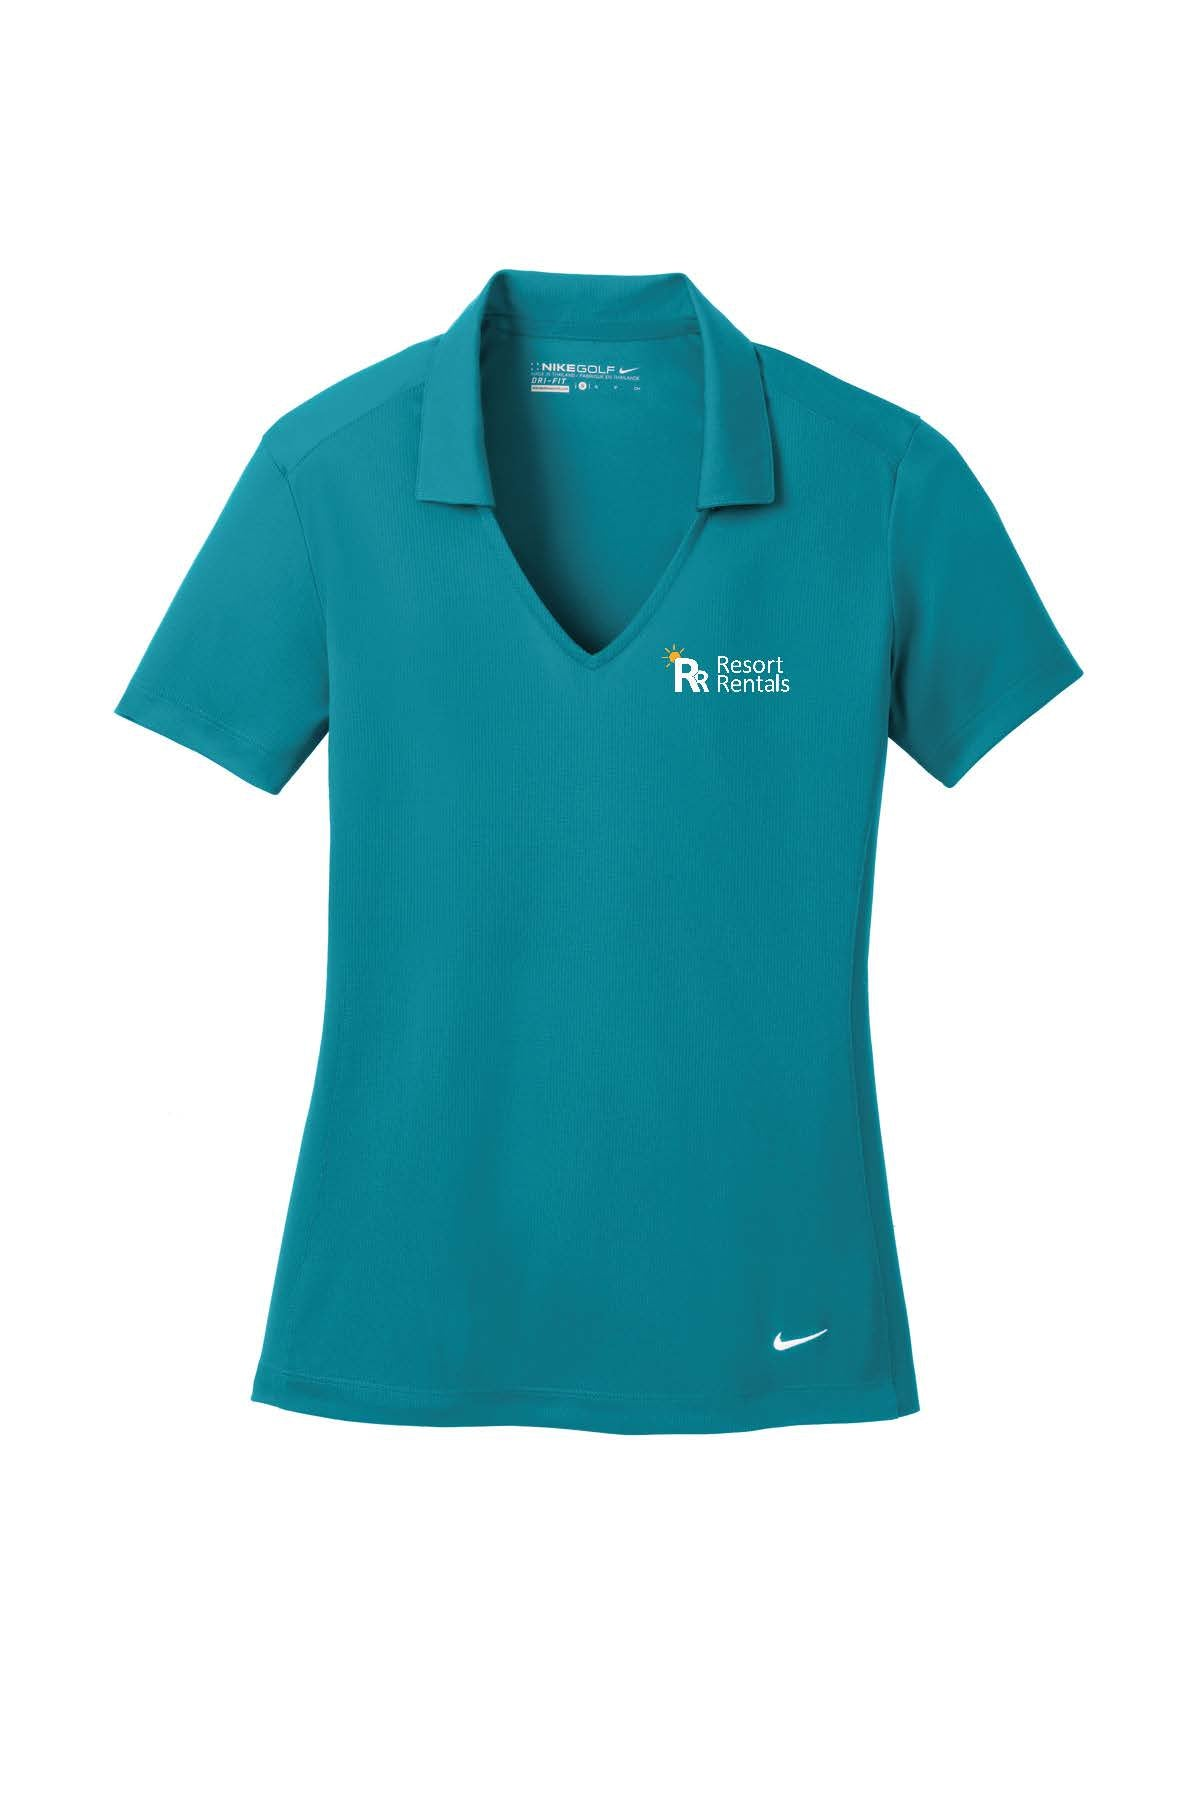 Resort Rentals Ladies Nike Manager Polo